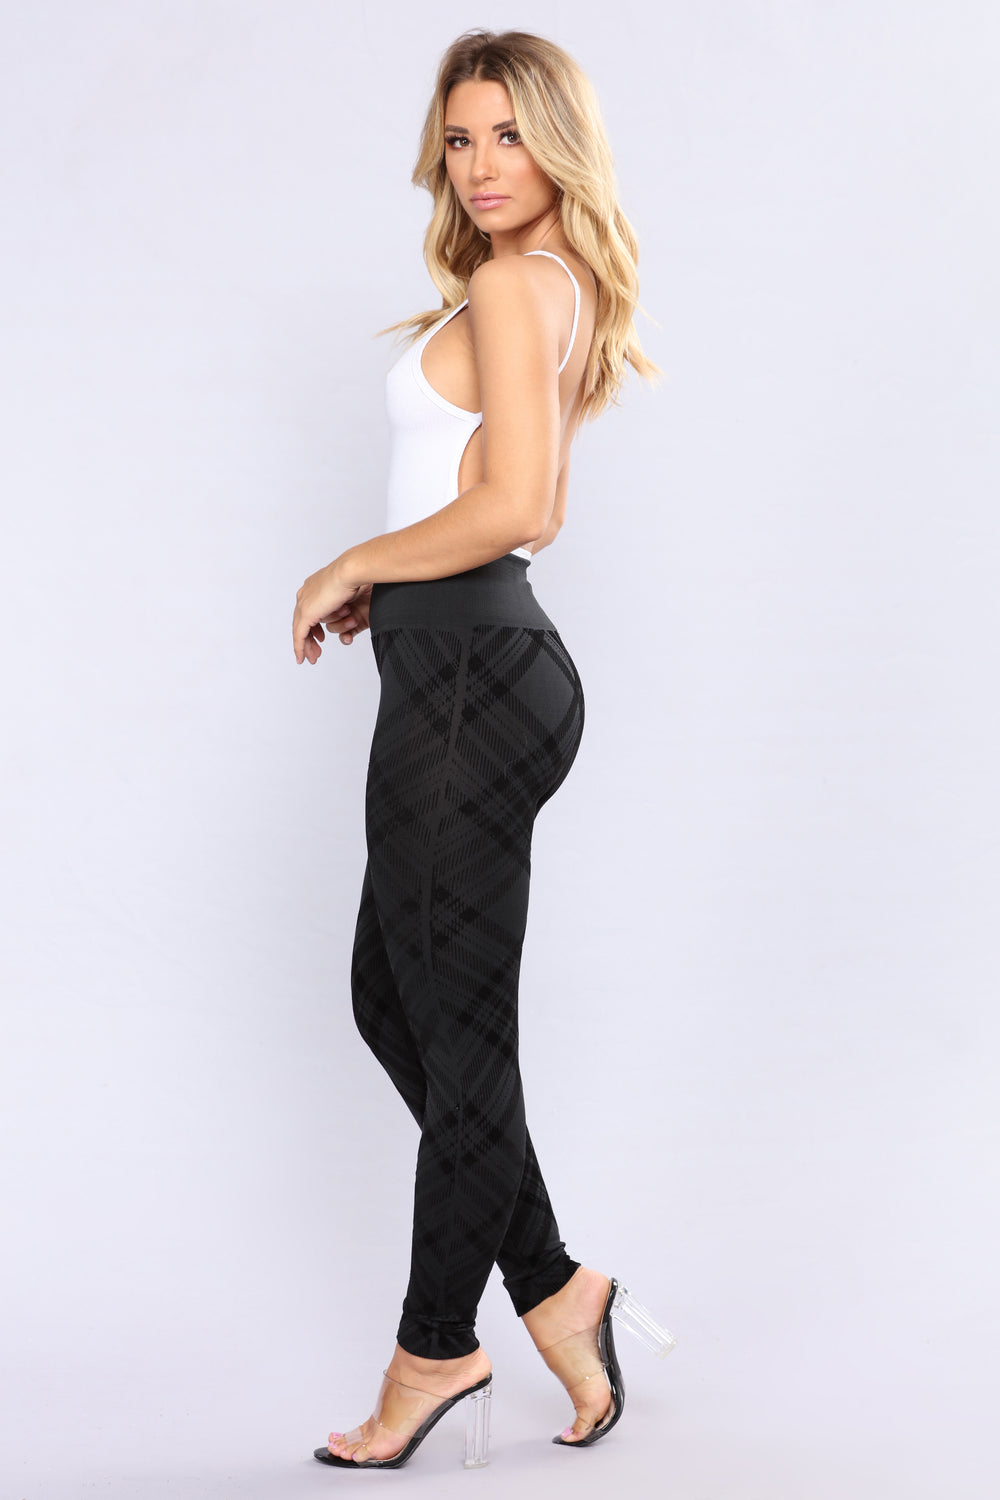 Plaid Fleece Lined Leggings - Black